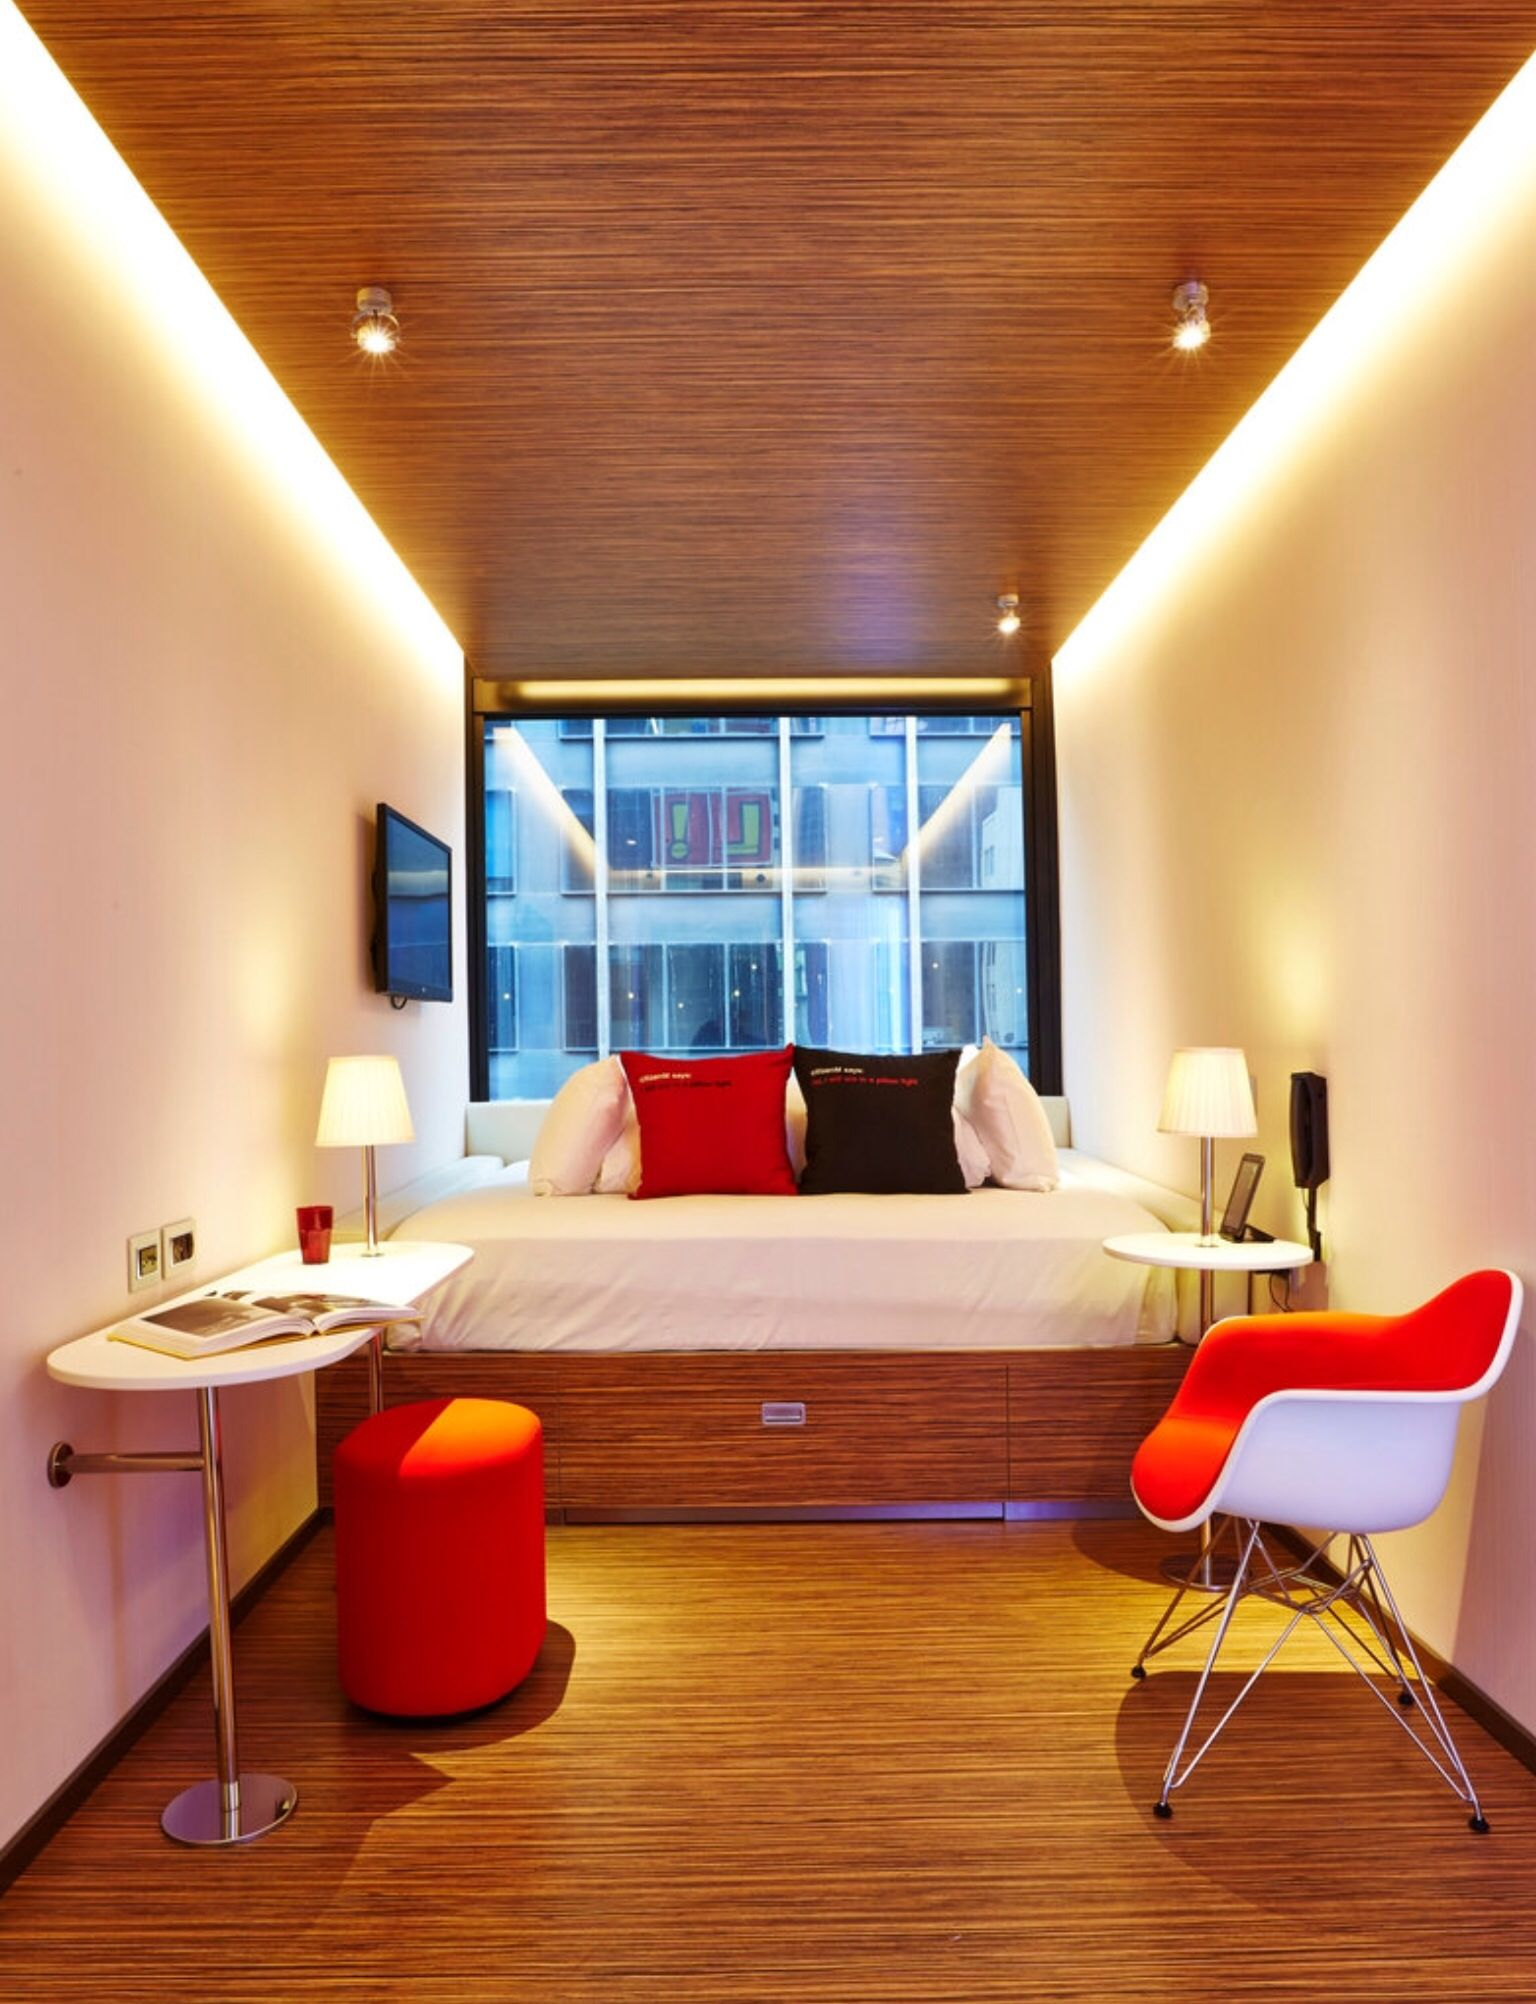 Hotel Suite Room: Citizen M Hotel Room Via NY Times. Compact. Sleepable